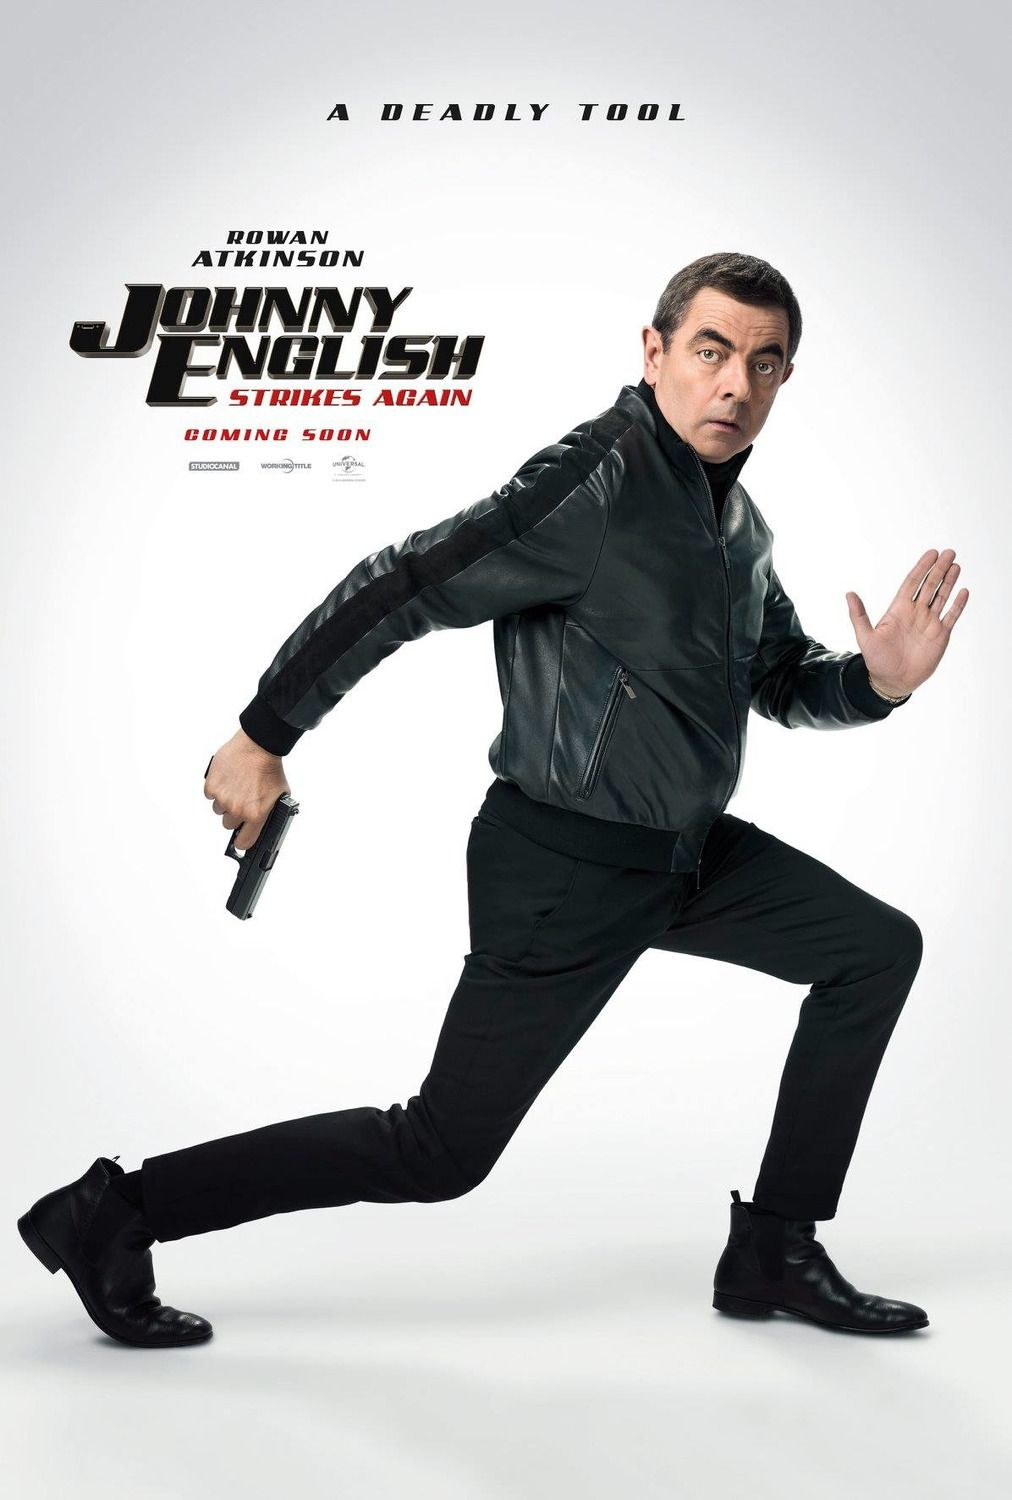 Johnny english strikes again new film posters https